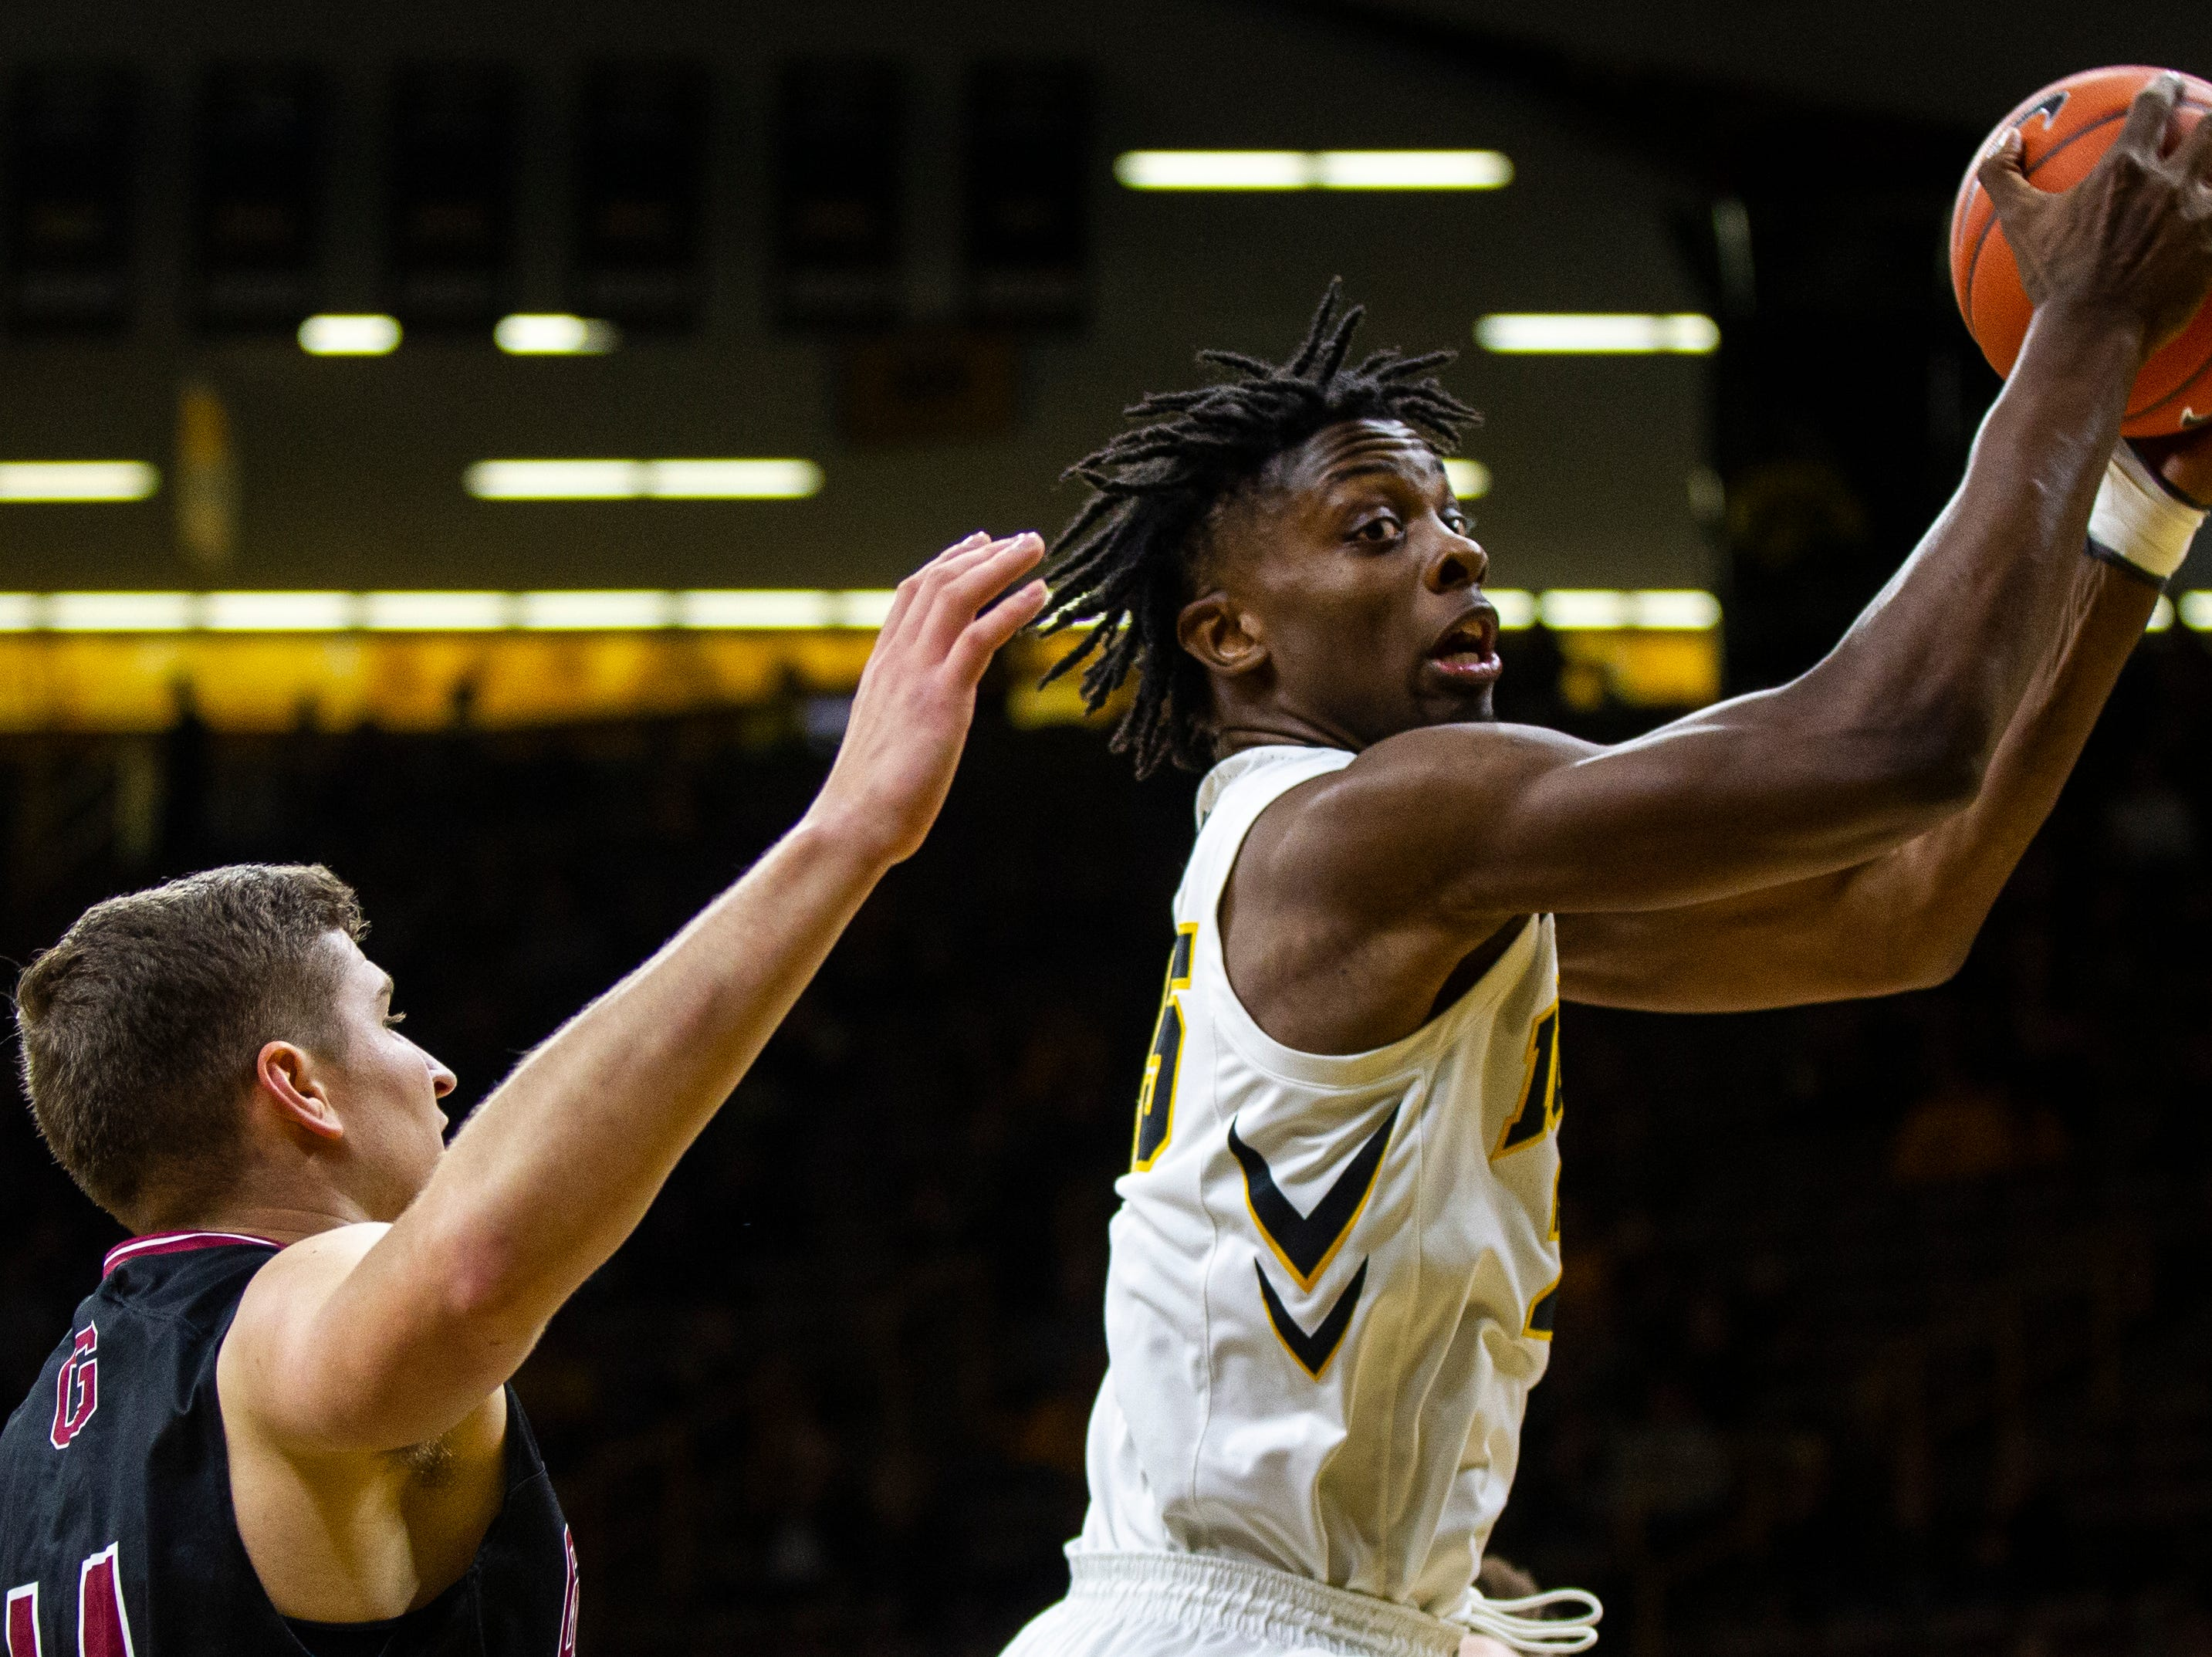 Iowa forward Tyler Cook (25) grabs a rebound during men's basketball exhibition game on Sunday, Nov. 4, 2018, at Carver-Hawkeye Arena in Iowa City.